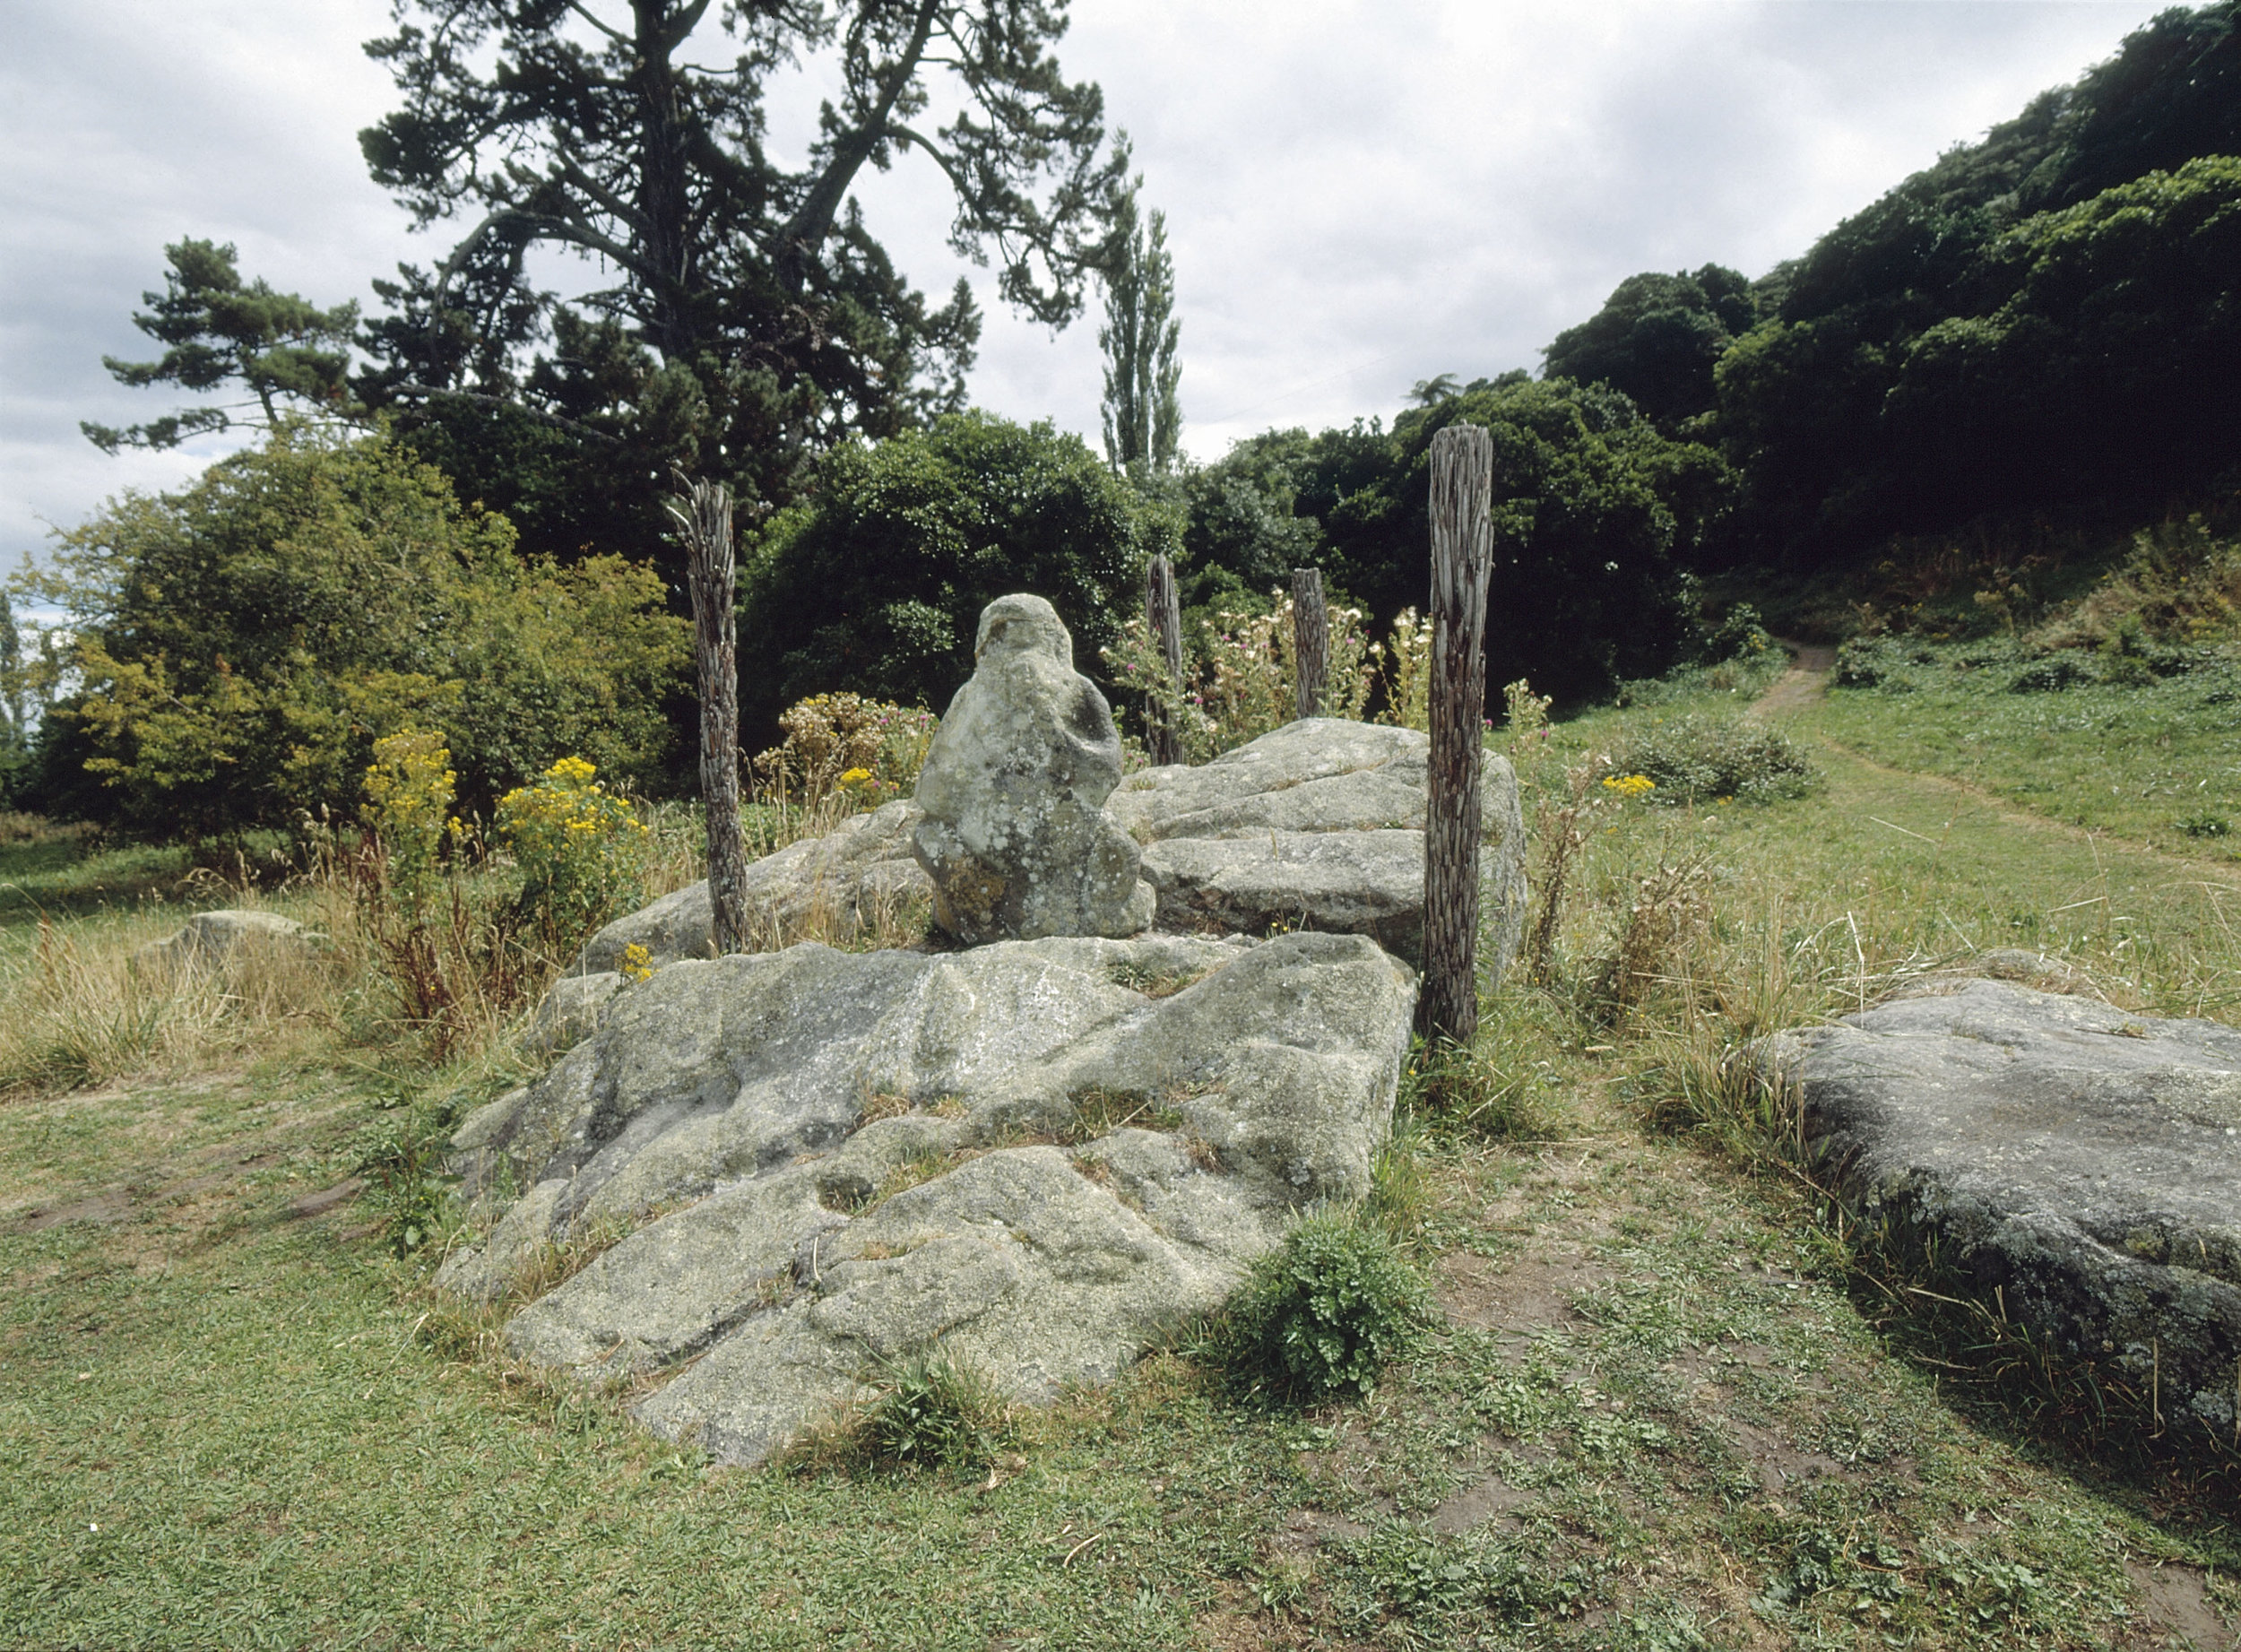 Kumara stone fertility god statue, said to have been brought from the legendary Maori homeland of Hawaiki in the ancestral Arawa canoe. Country of Origin: New Zealand. Culture: Maori. Place of Origin: Place of Origin: Mokoia Island, Lake Rotorua.   Inv. #: 55405108 © Werner Forman Archive